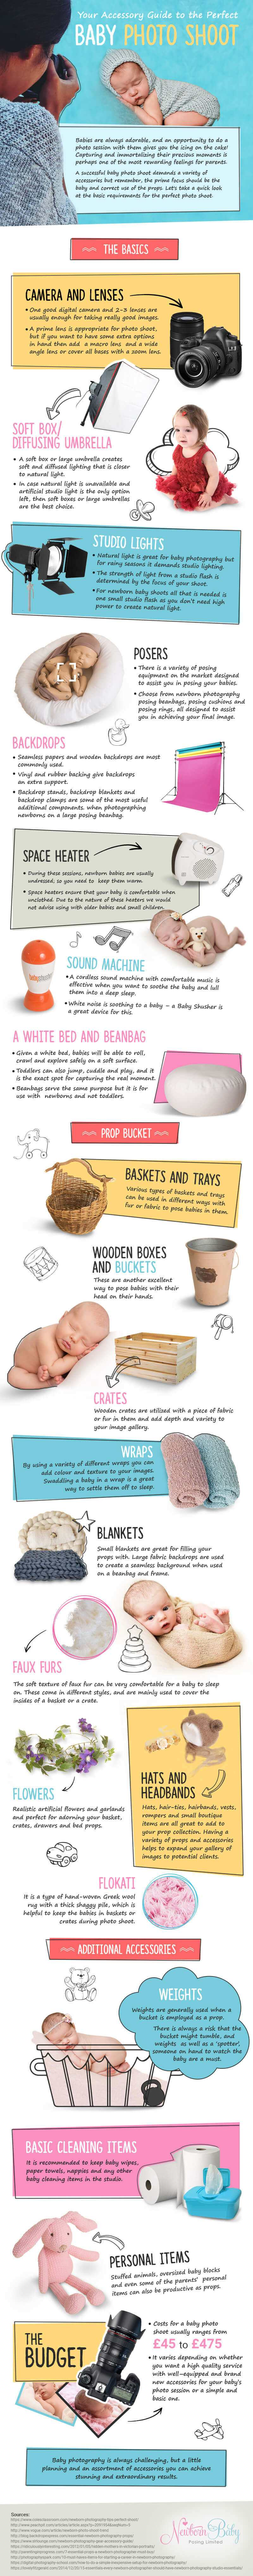 Your Accessory Guide to the Perfect baby Photo Shoot _01 (1)